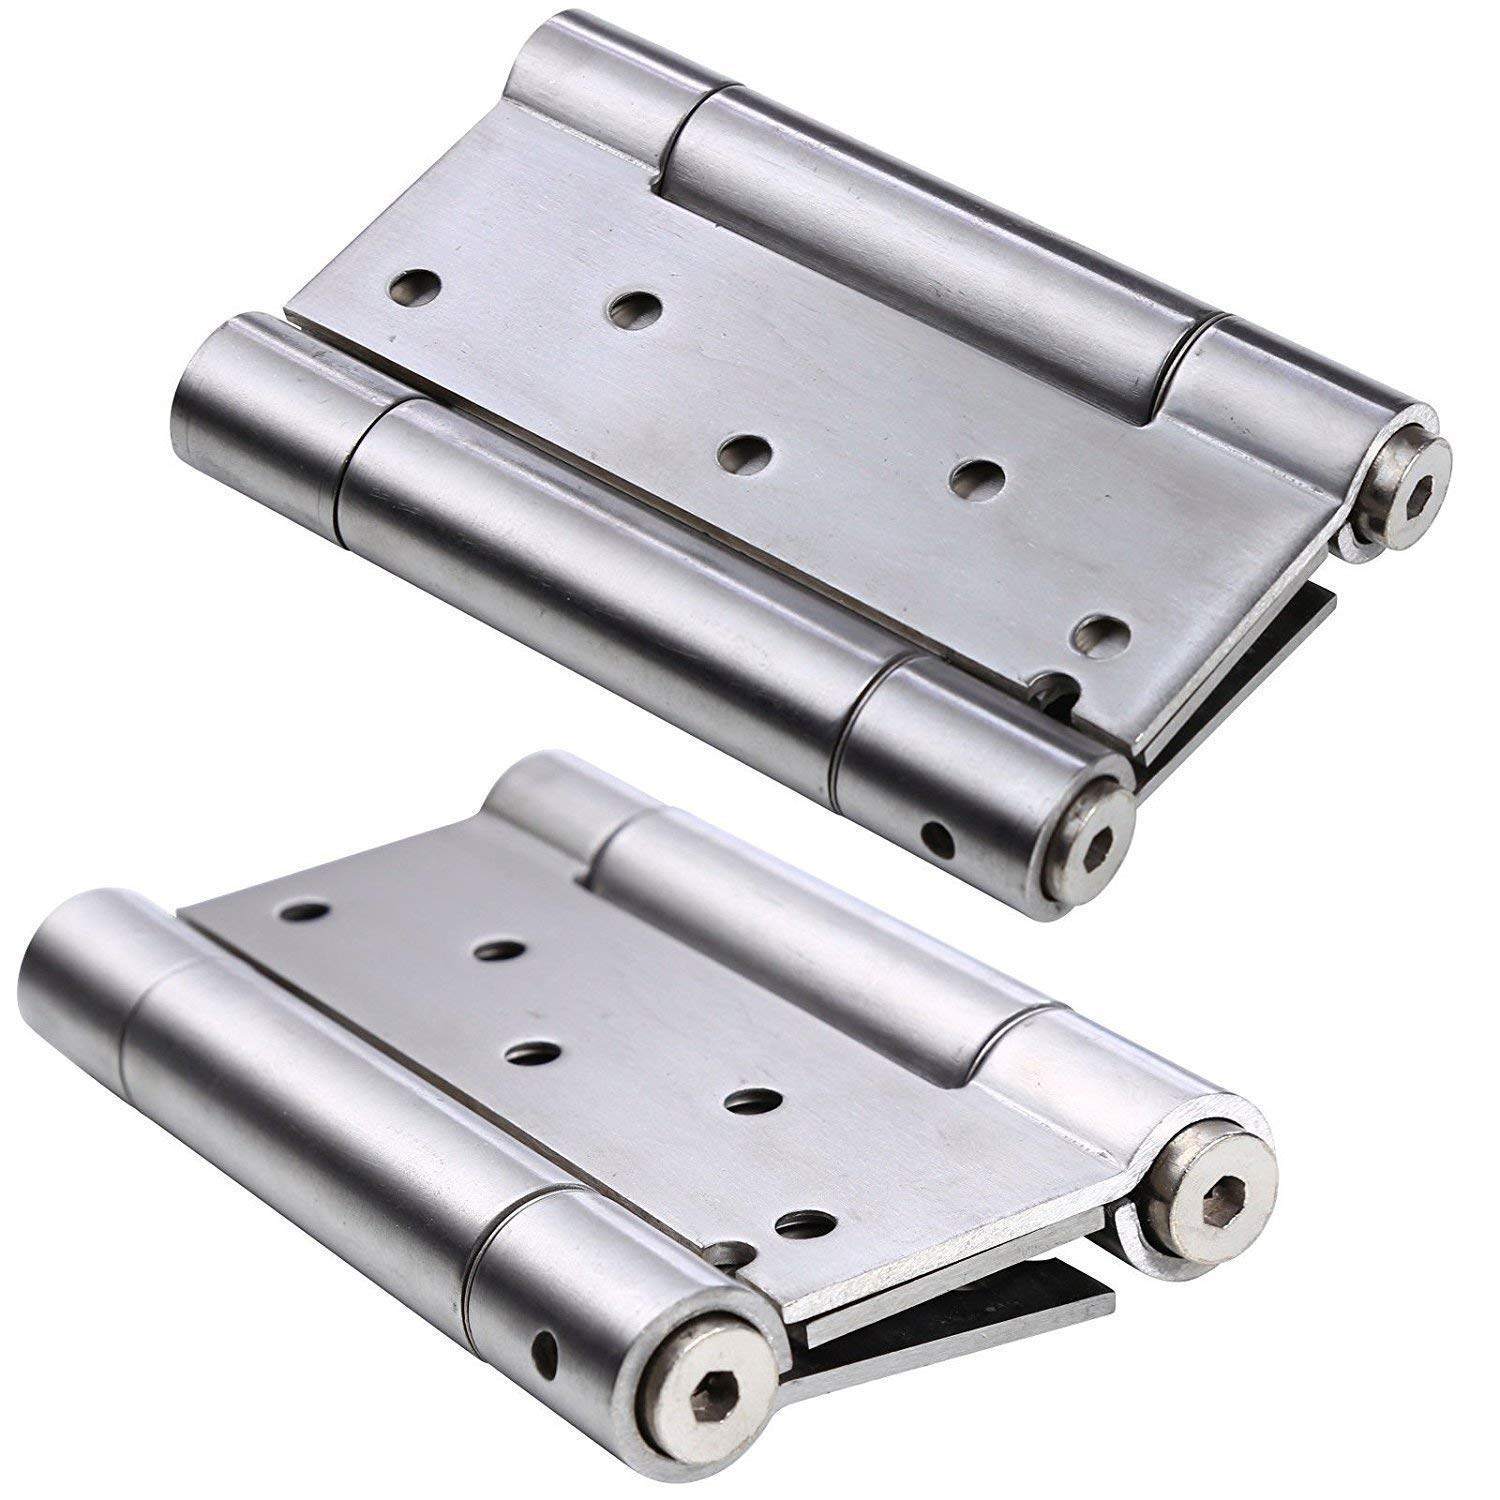 102mm Height Stainless Steel 304 Brushed Finish 110mm Open Width 18mm Pin Diameter 3mm Leaf Thickness Sugatsune S-6166-2-L Weld On Lift Off Hinge Left Handedness